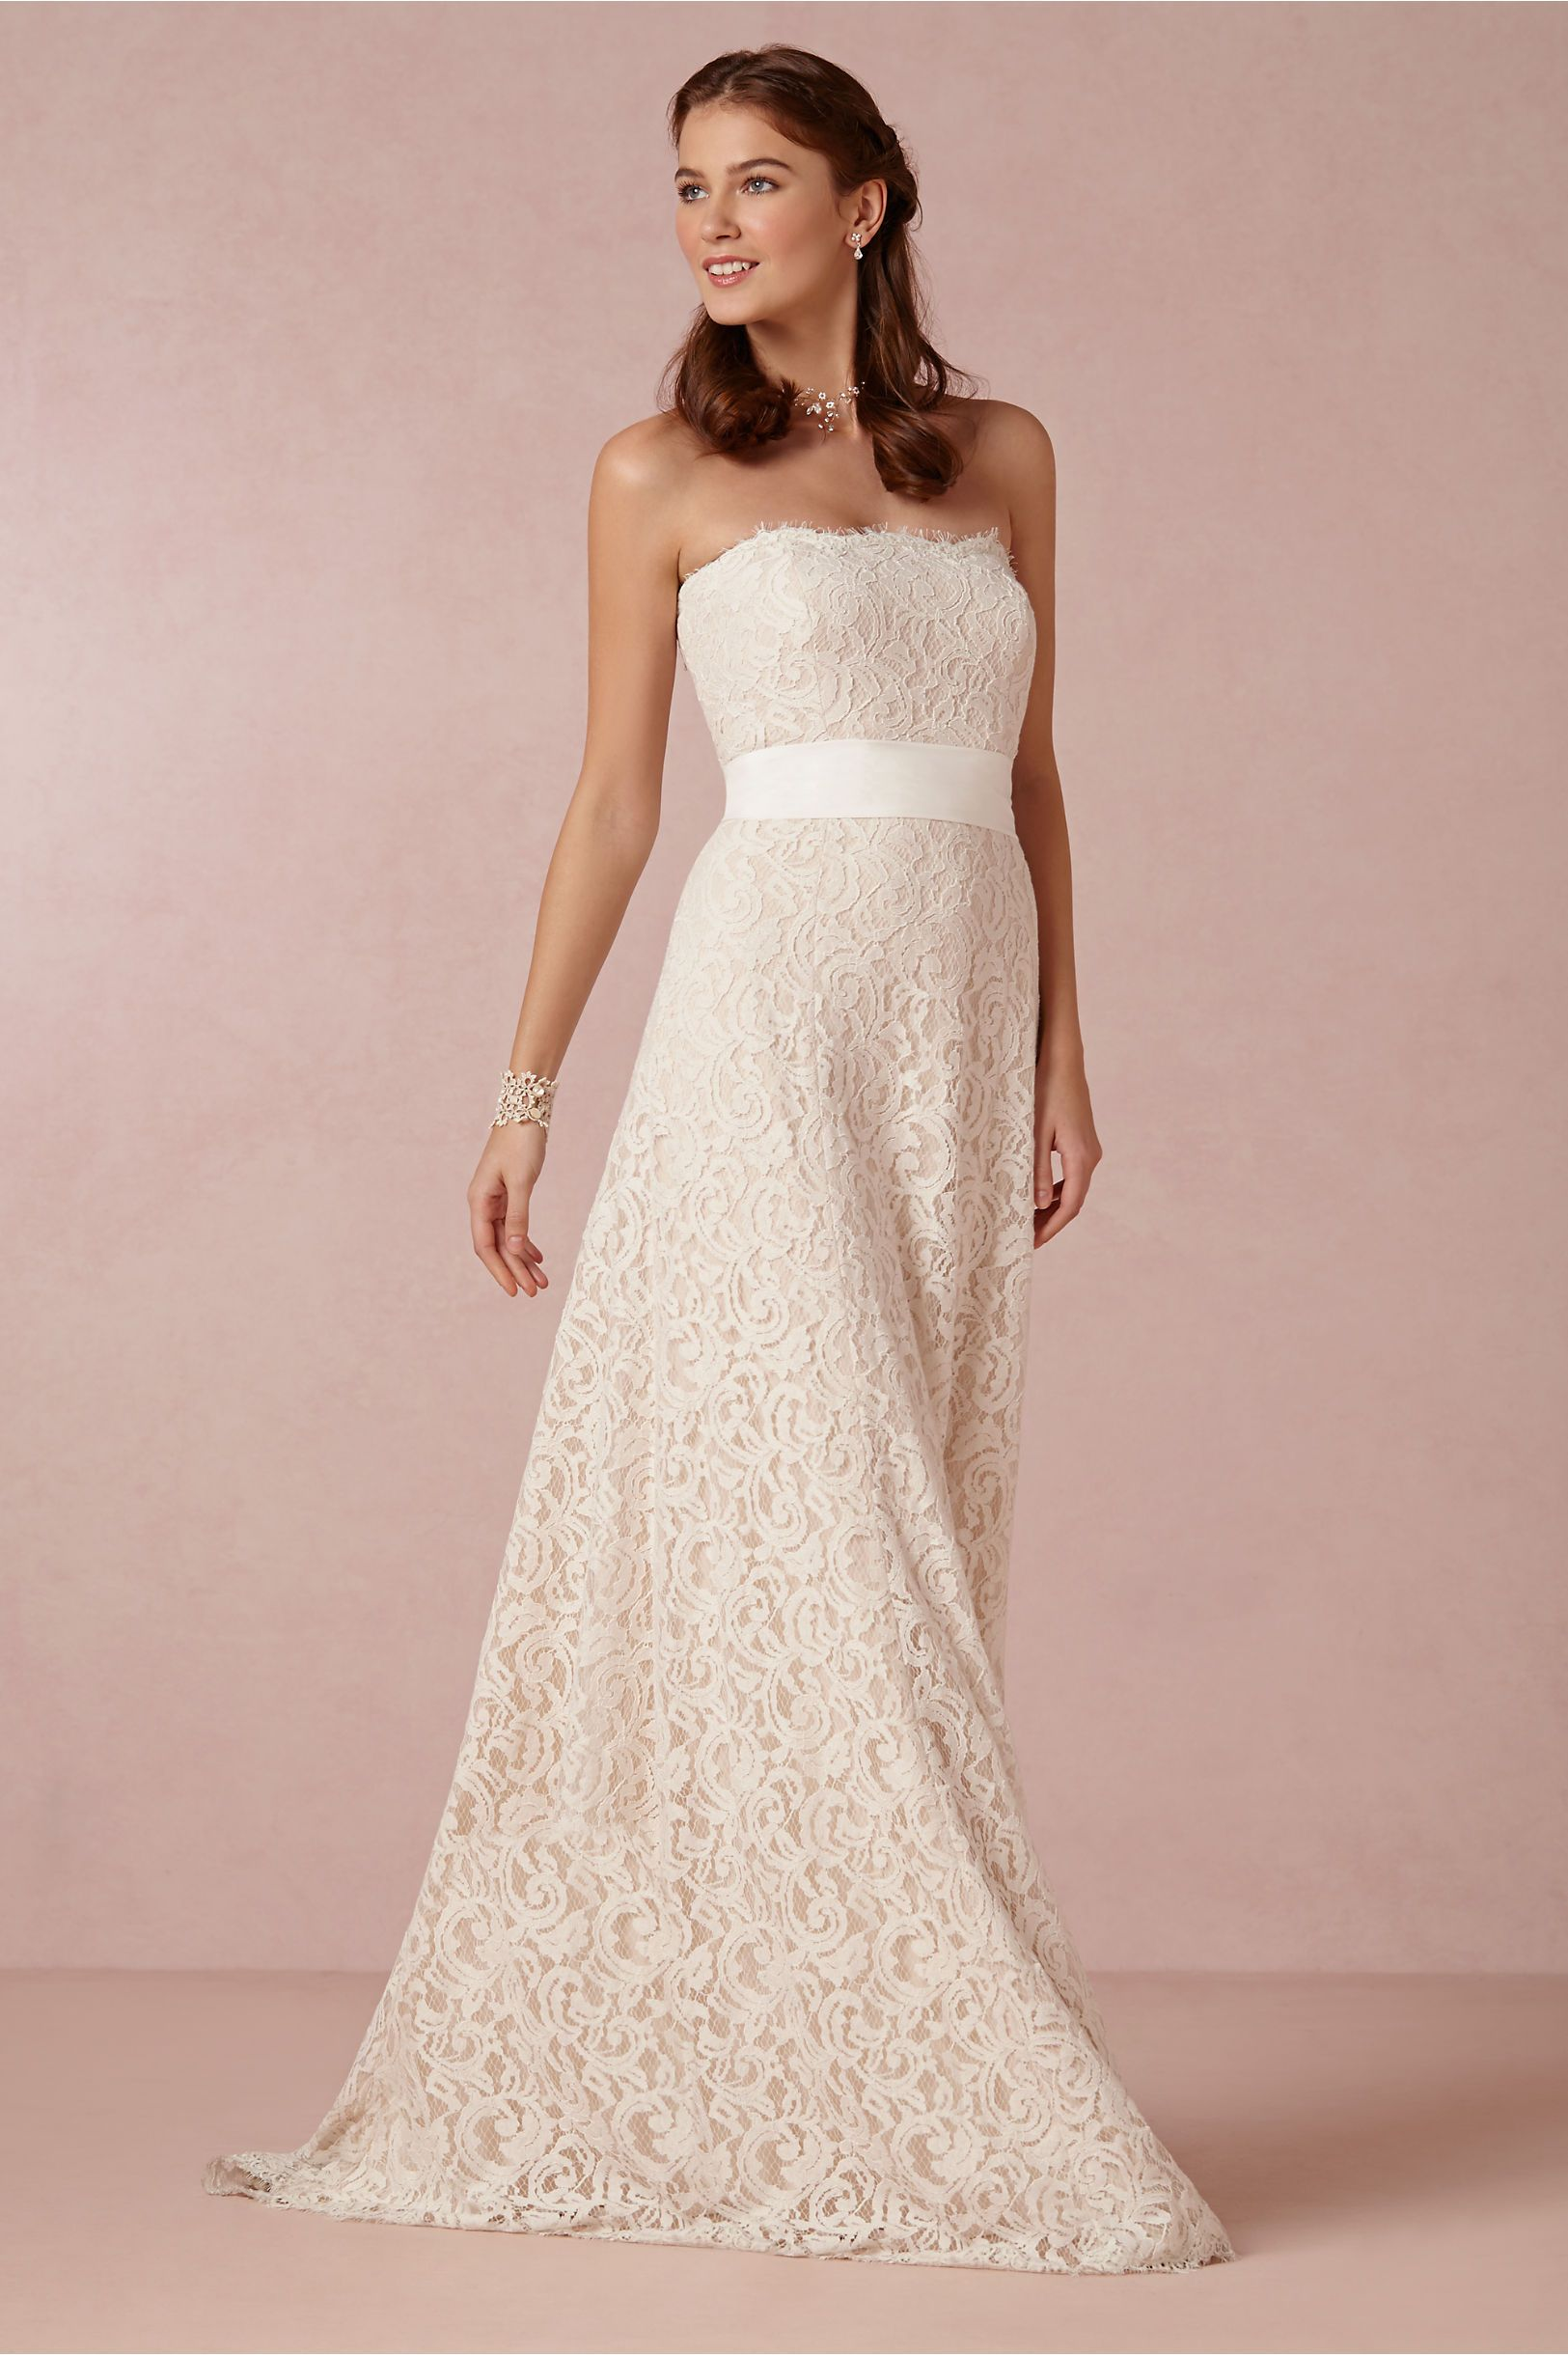 Lovely All Lace Wedding Dress By Bhldn Under 500